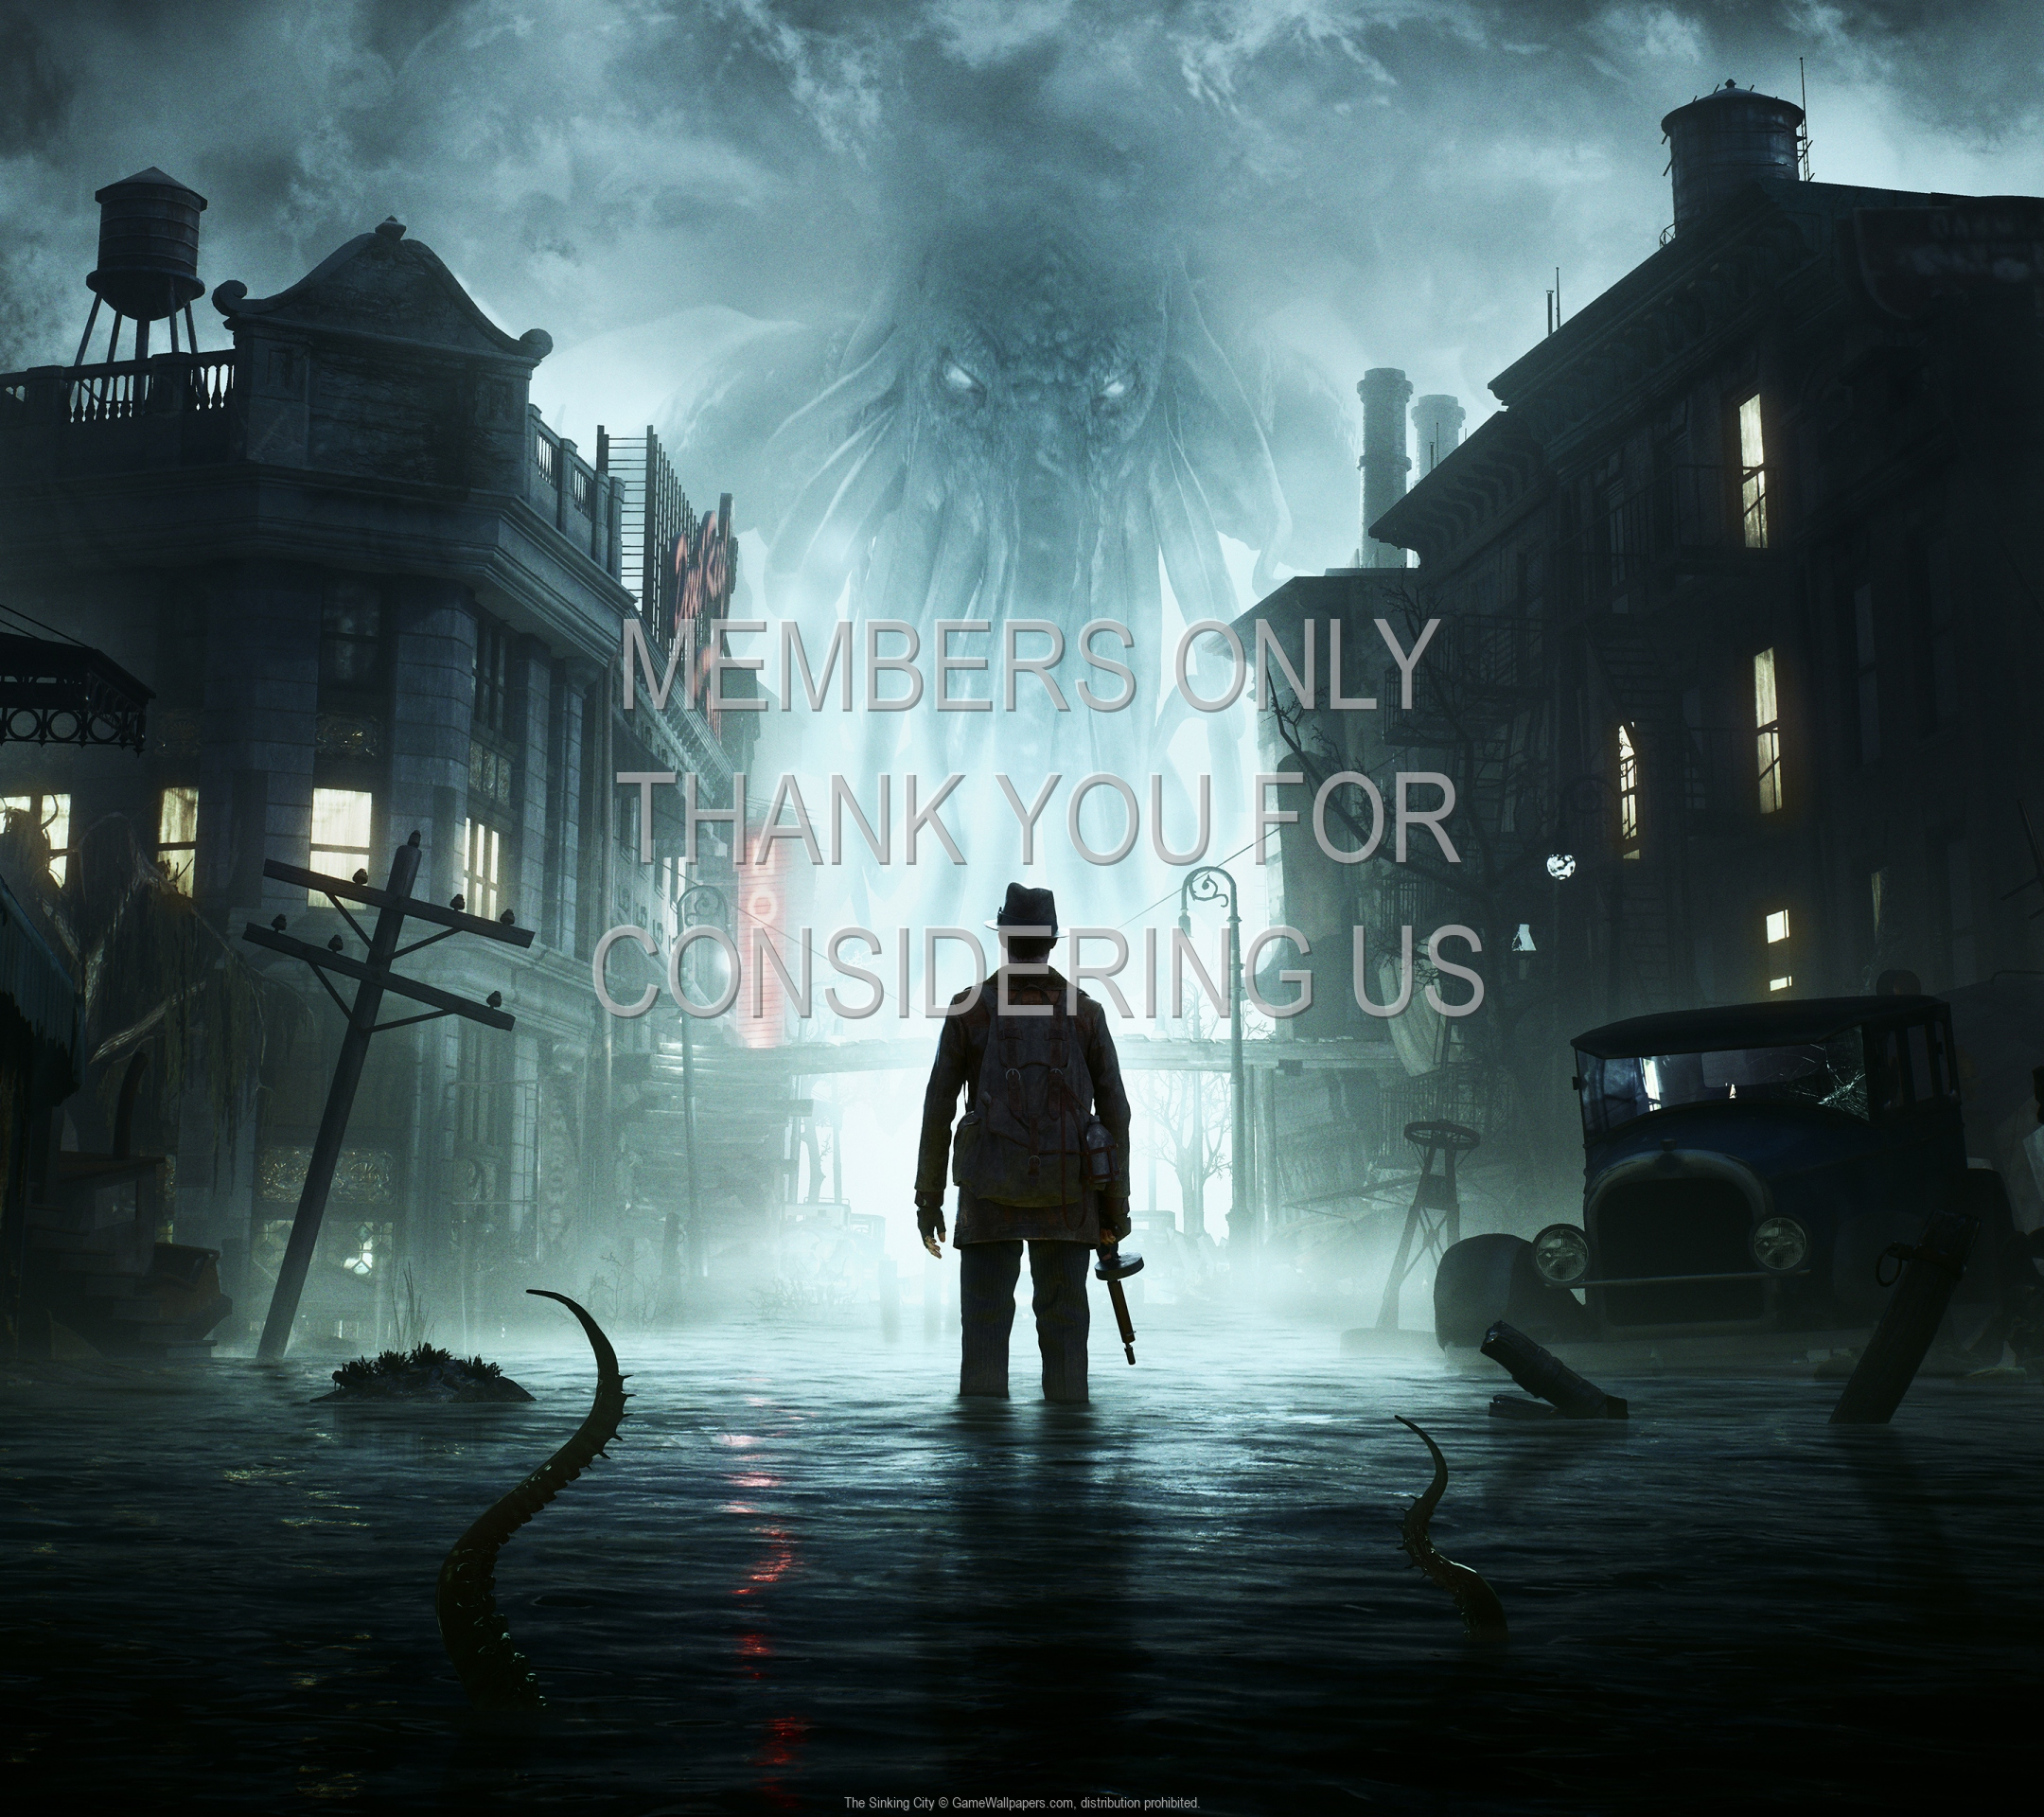 The Sinking City 1920x1080 Mobiele achtergrond 01